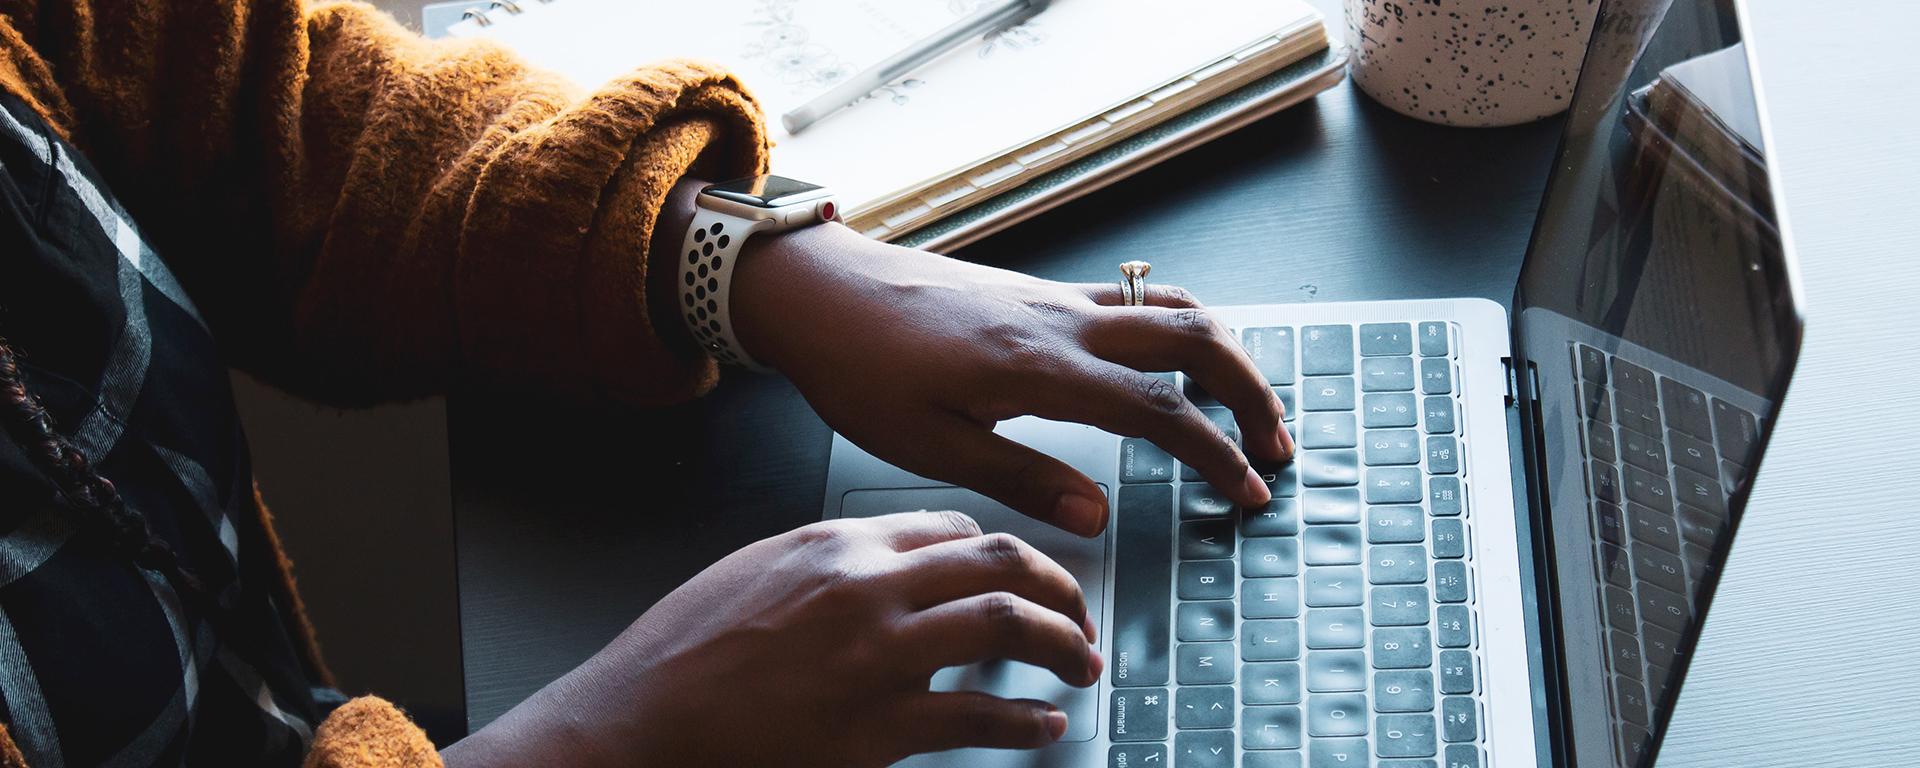 Close up of a Brown woman's hands as she types on her laptop